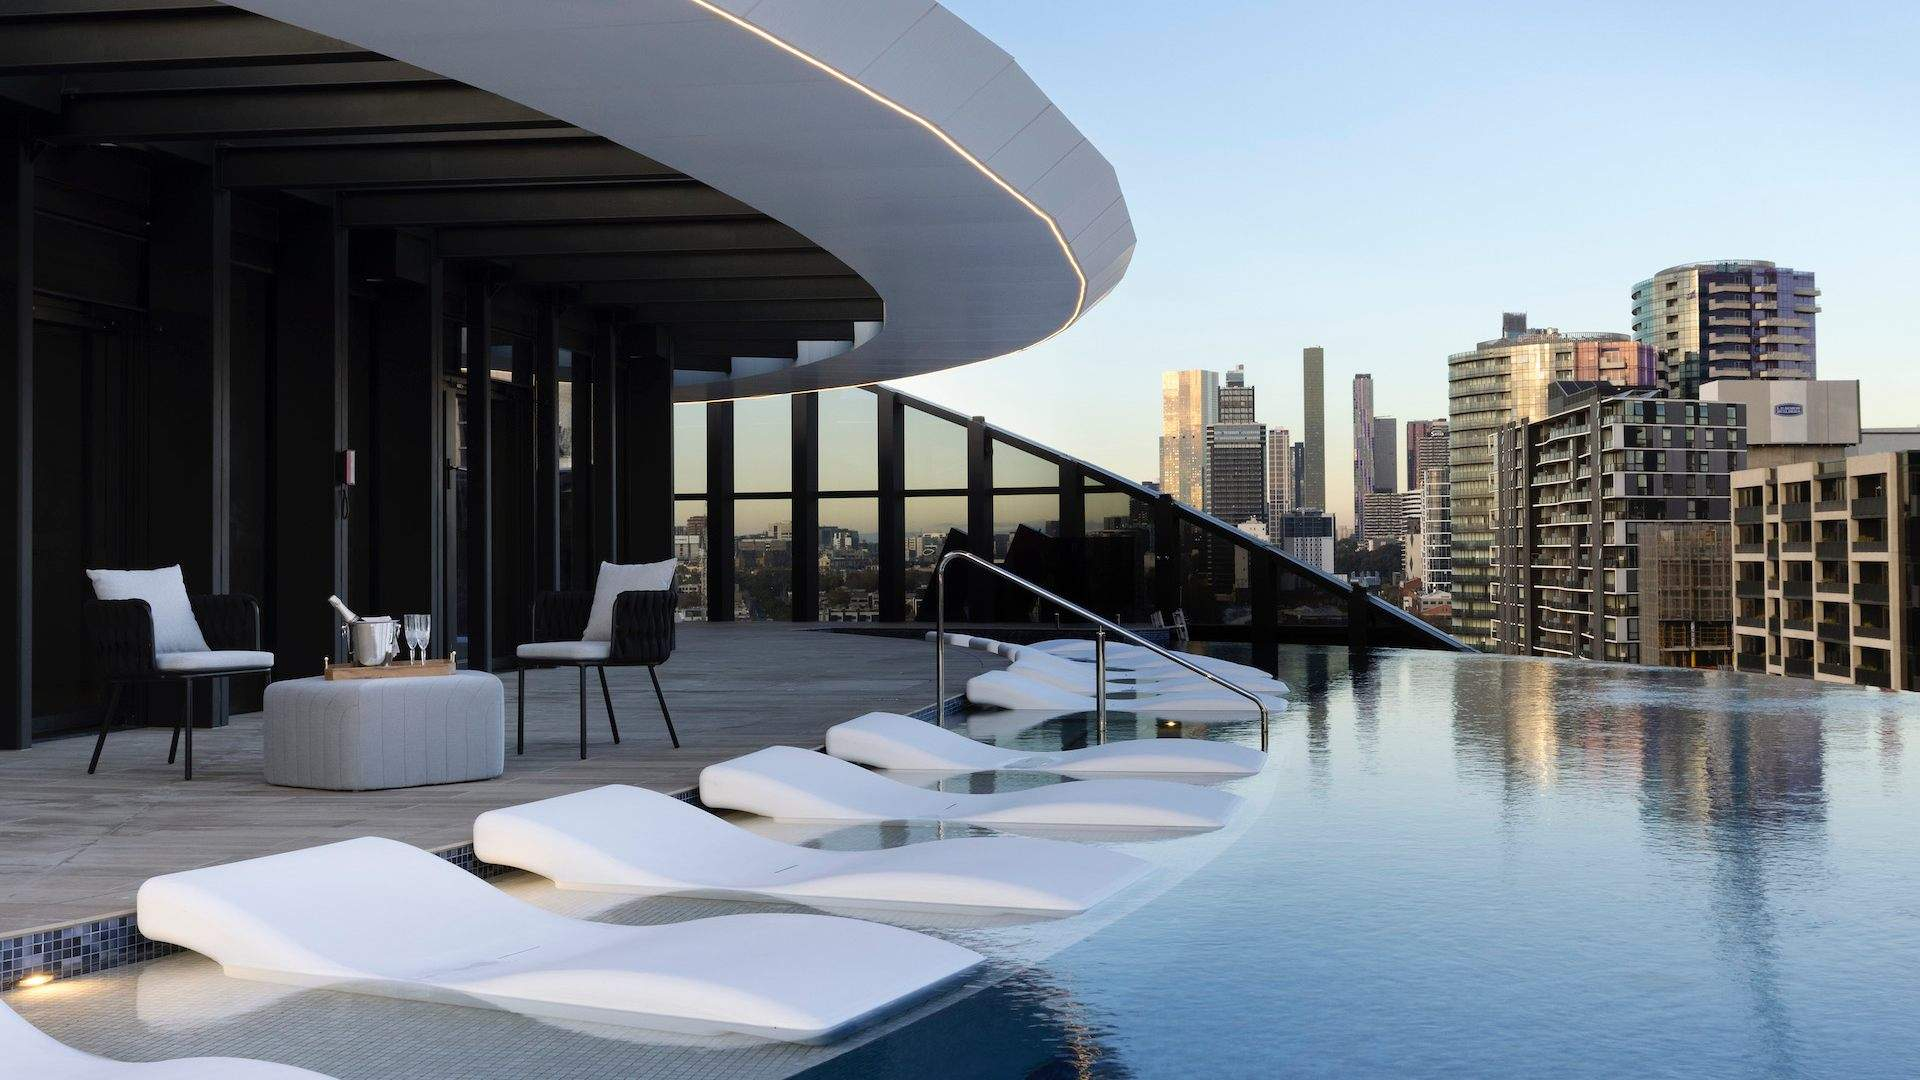 Melbourne's New Marriott Hotel Opens This Month with a Rooftop Bar and Heated Infinity Pool